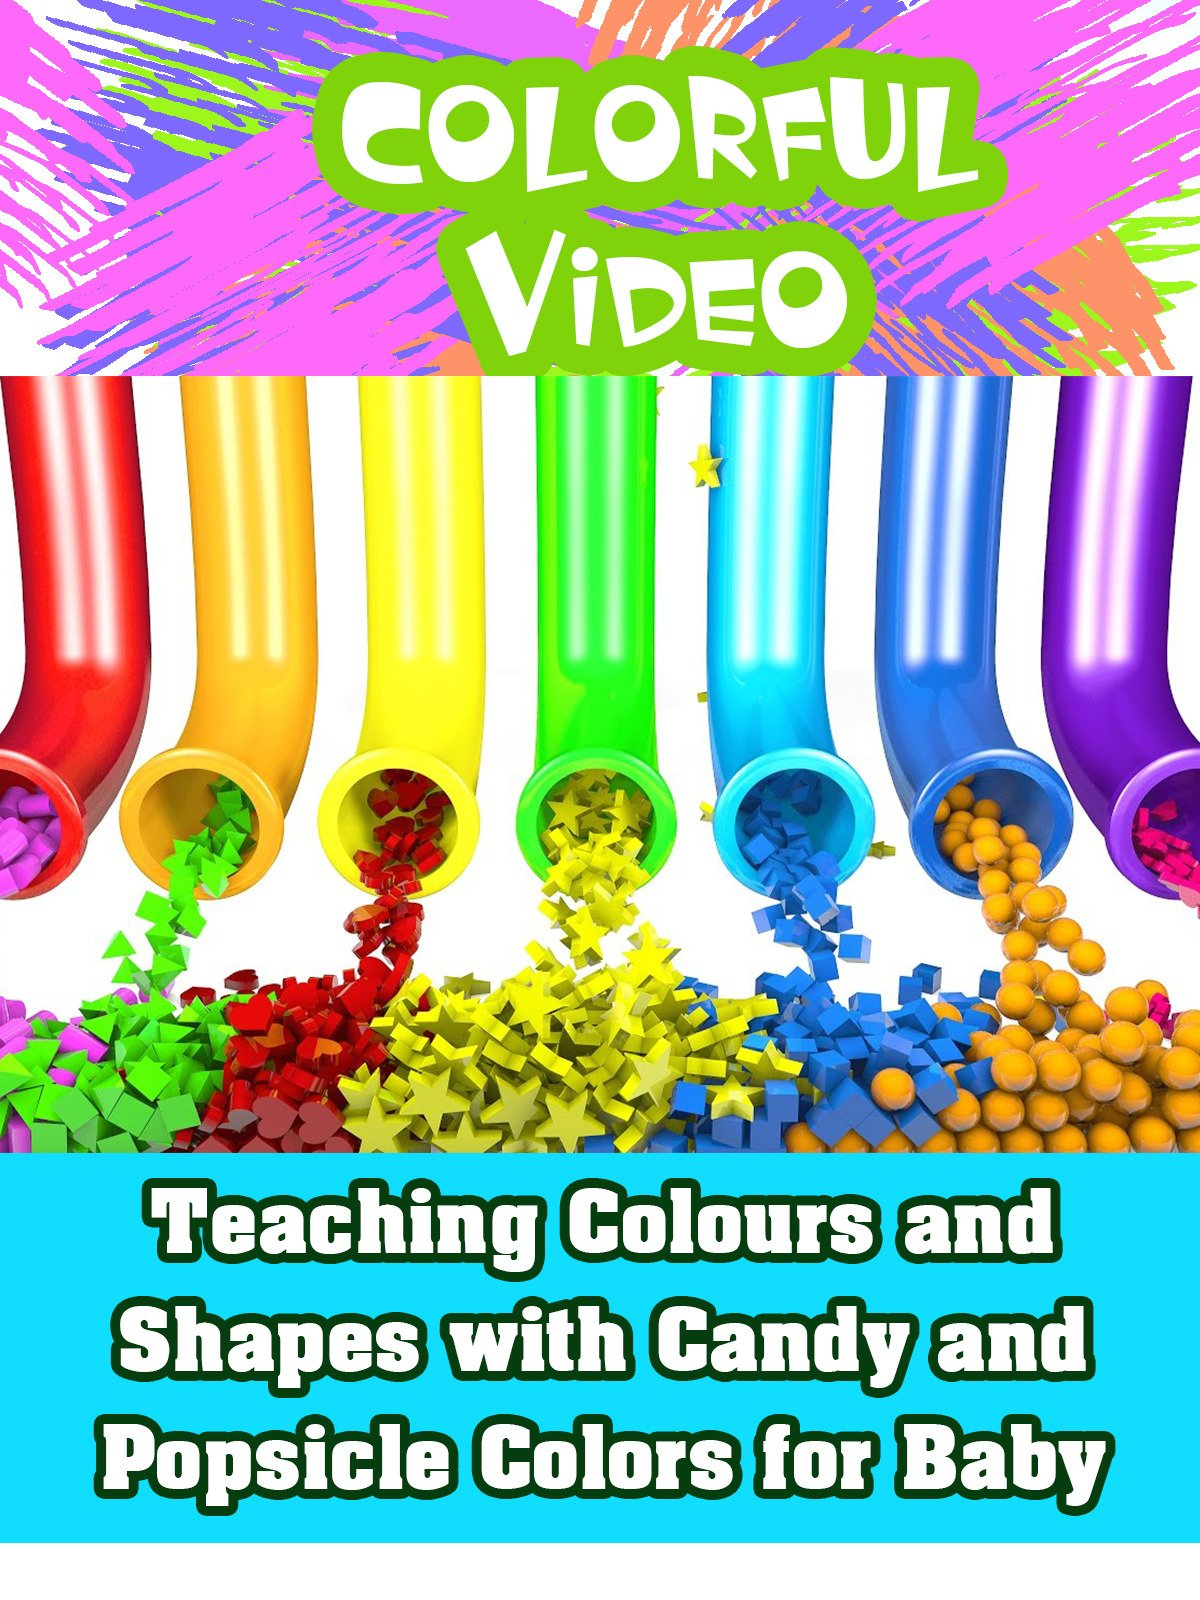 Teaching Colours and Shapes with Candy and Popsicle Colors for Baby